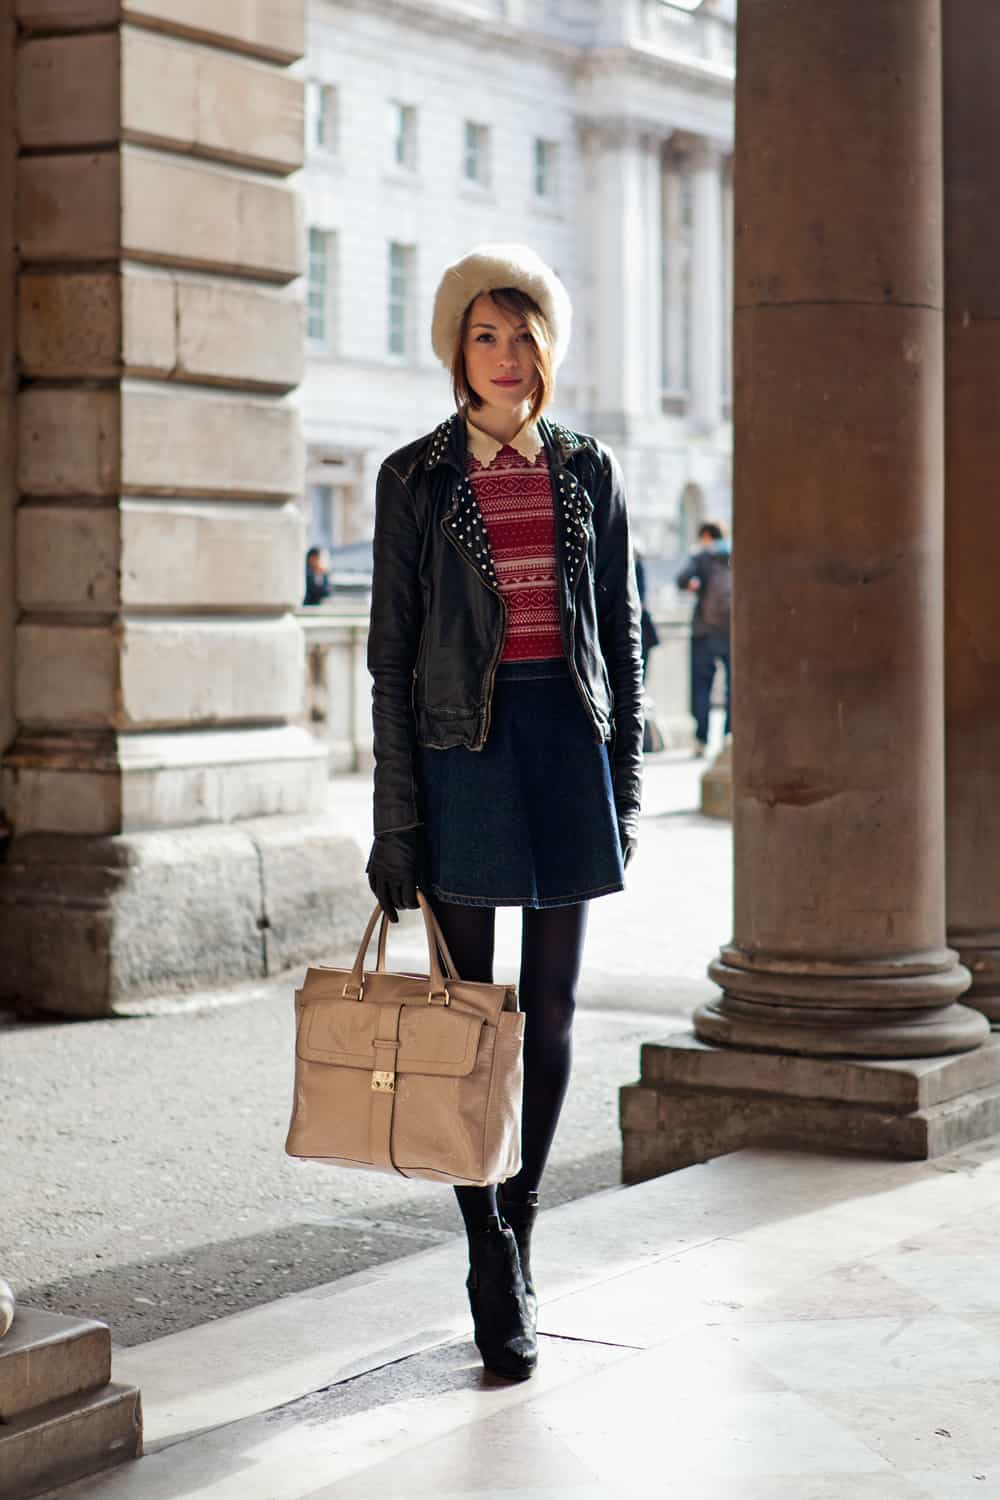 How does london street style look edgy sophisticated loose vintage urban the fashion tag Girl fashion style london